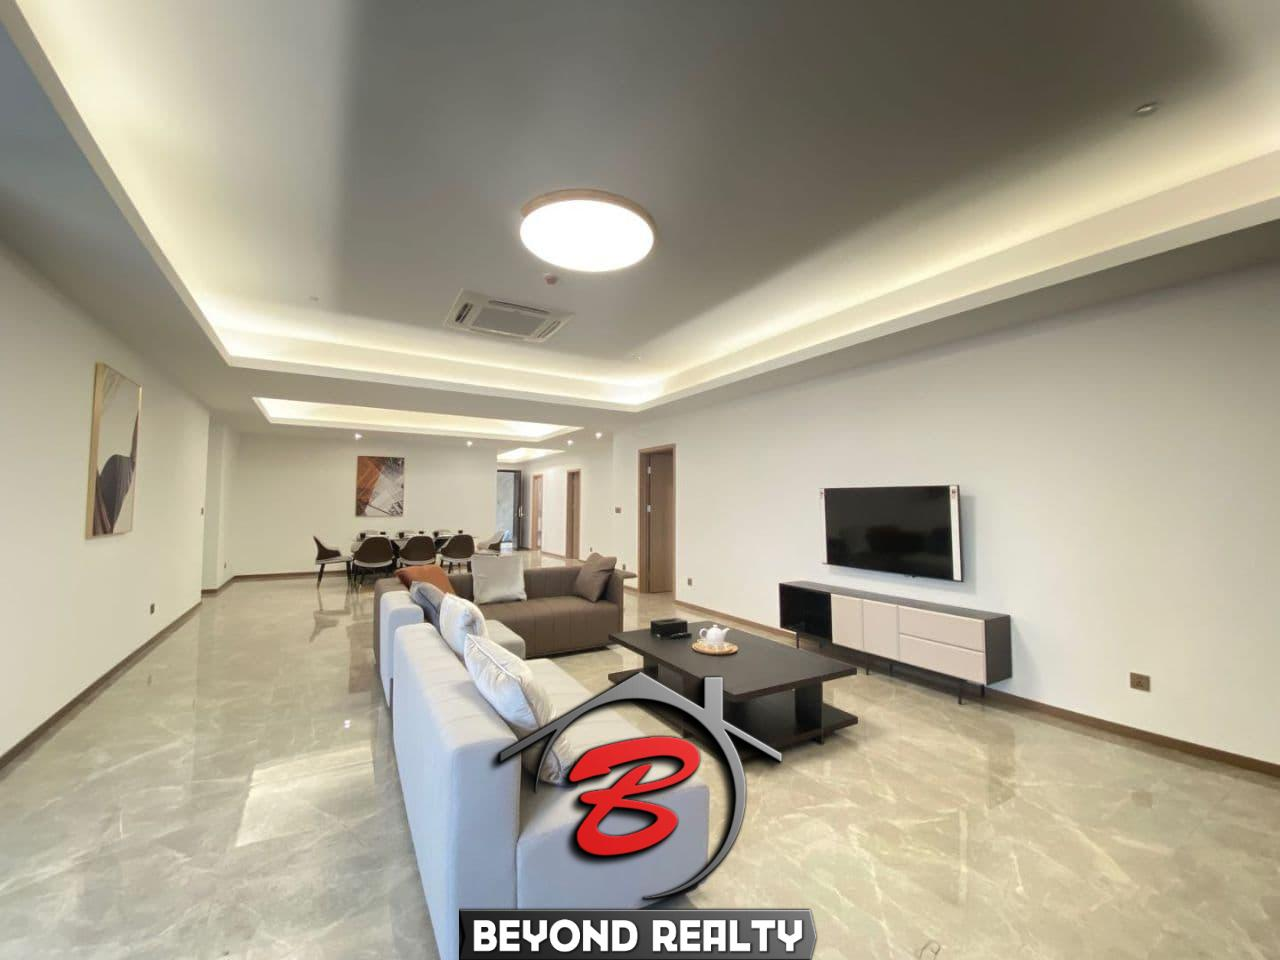 the living room 3-bedroom luxury spacious serviced flat for rent